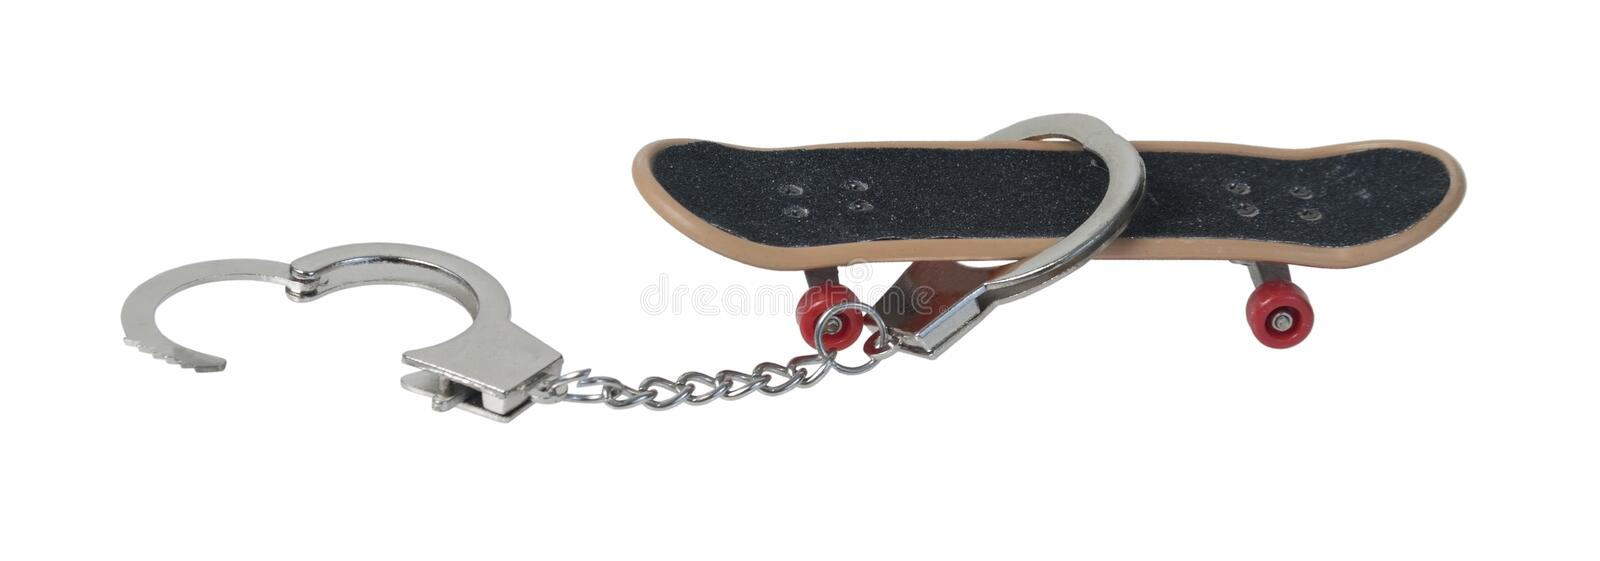 Skateboard with Handcuffs stock images